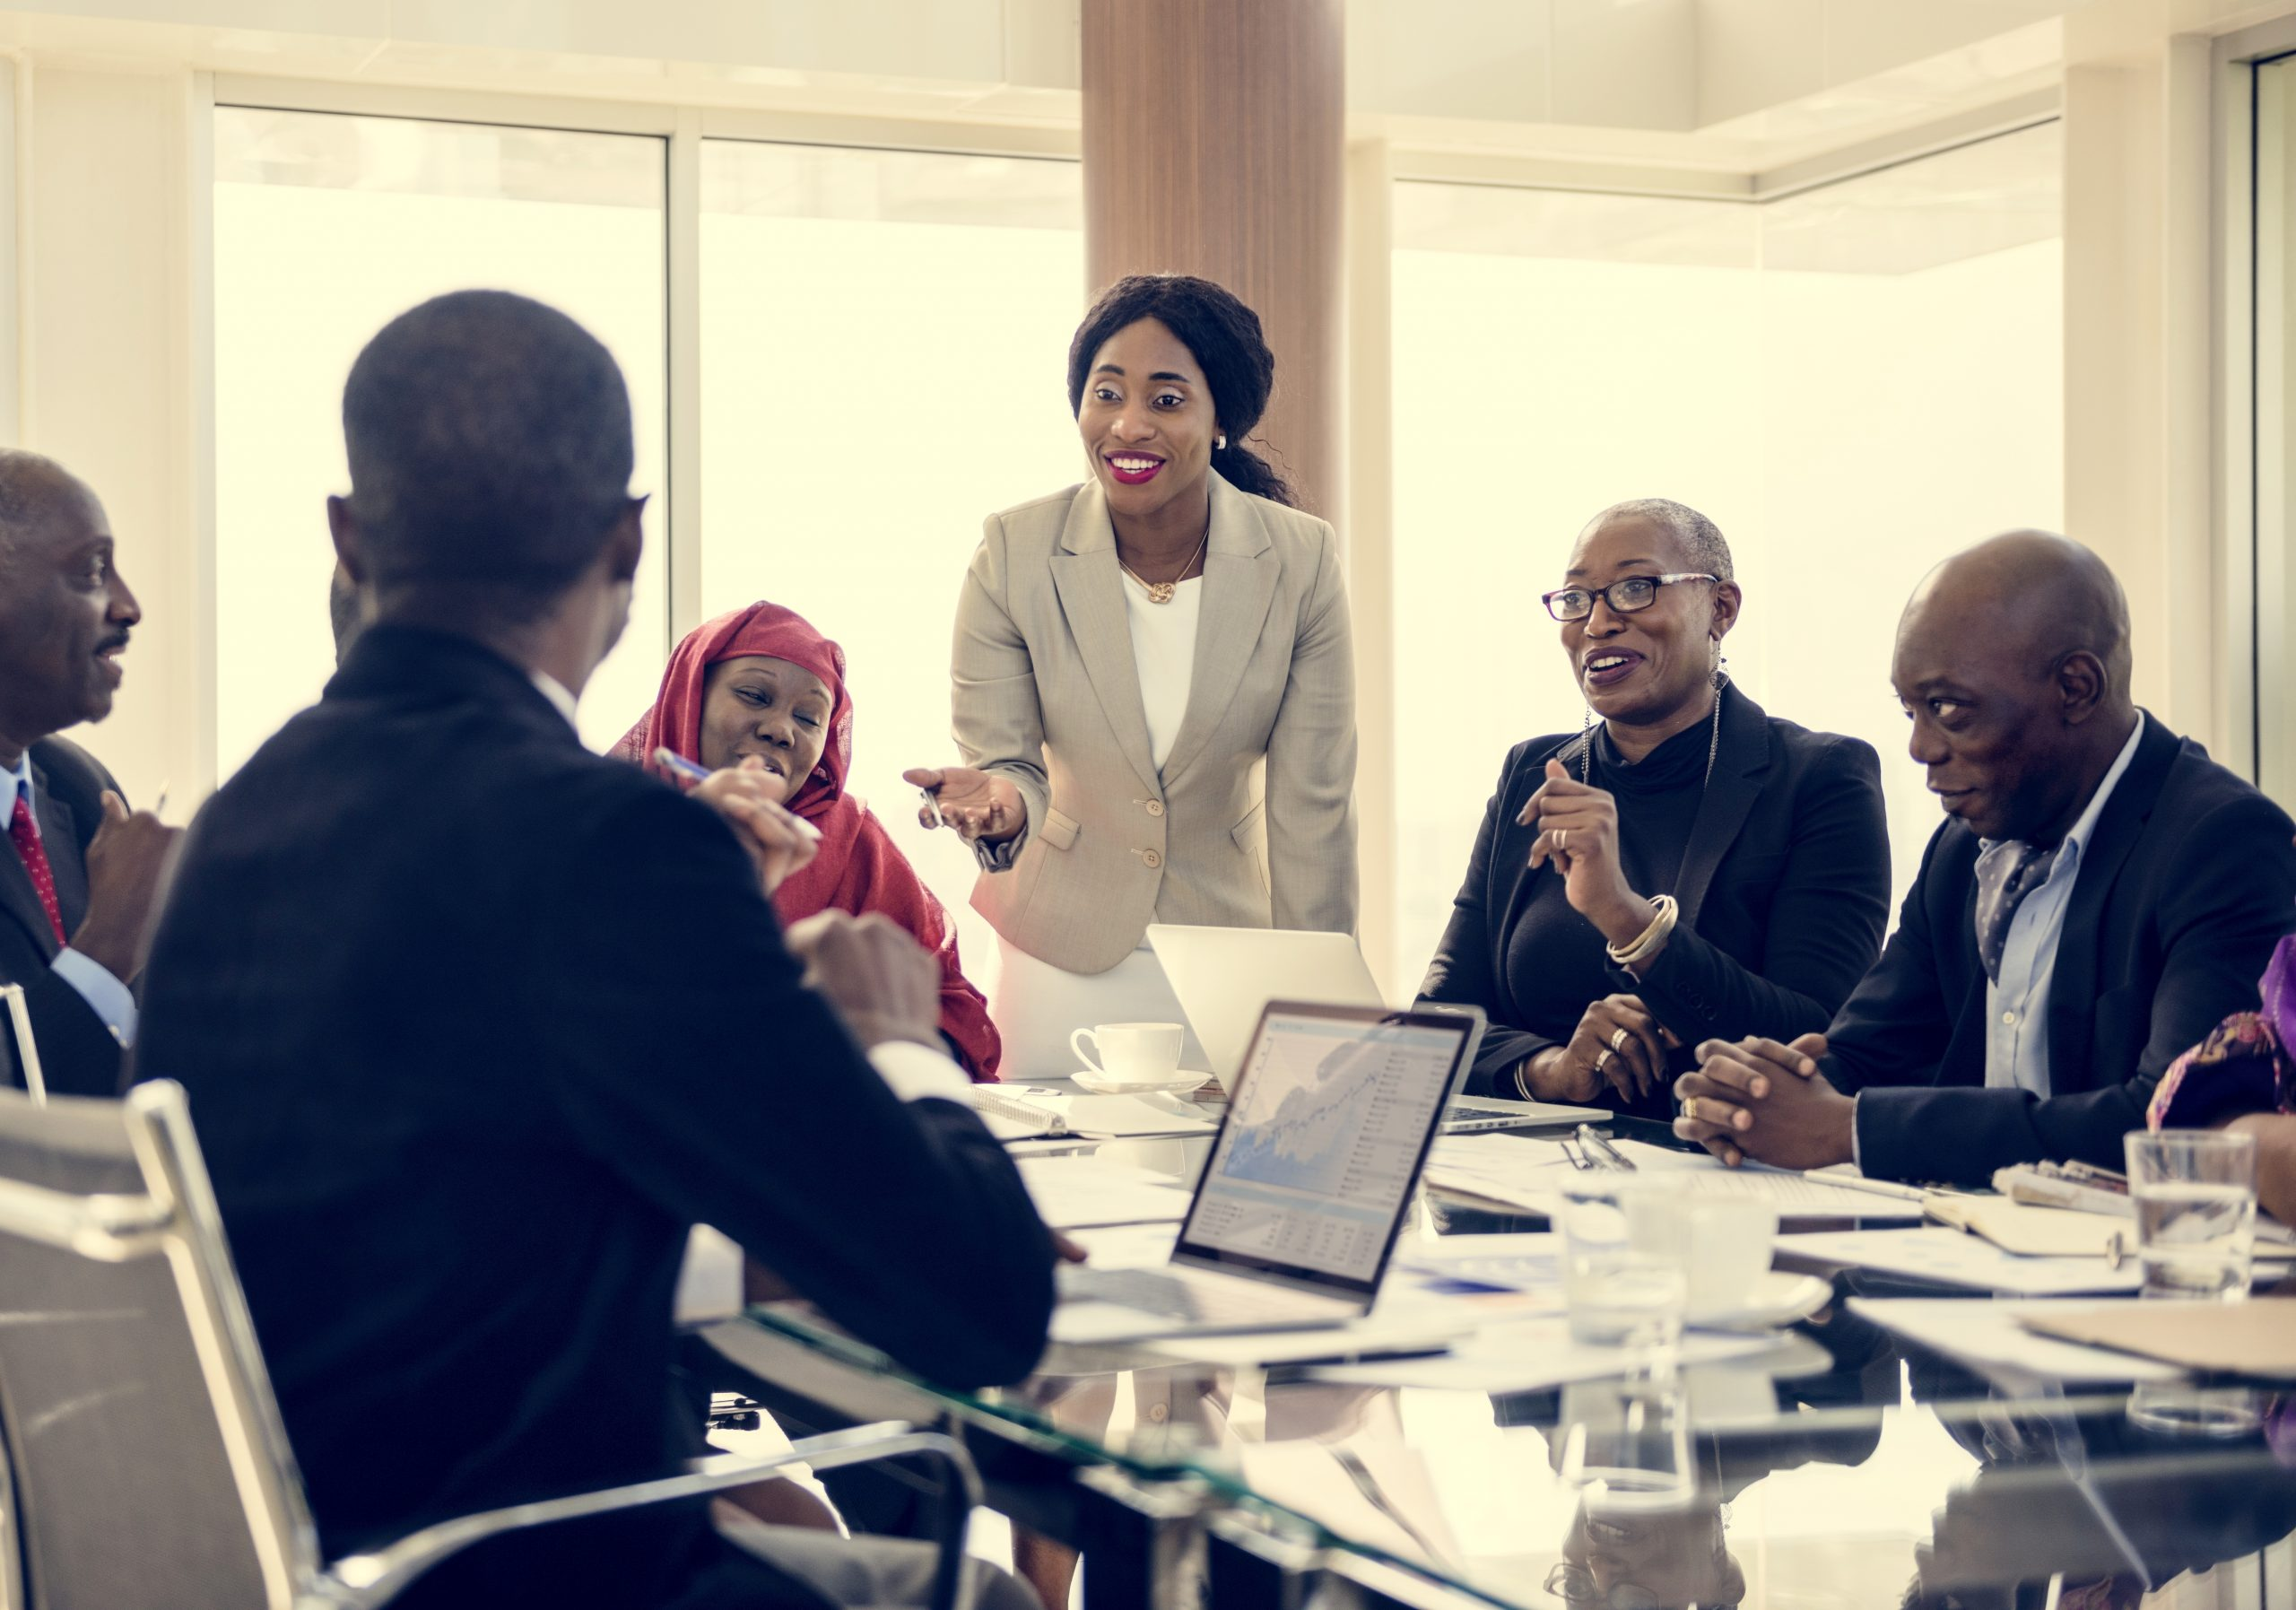 Black men and women having a meeting at a conference room.